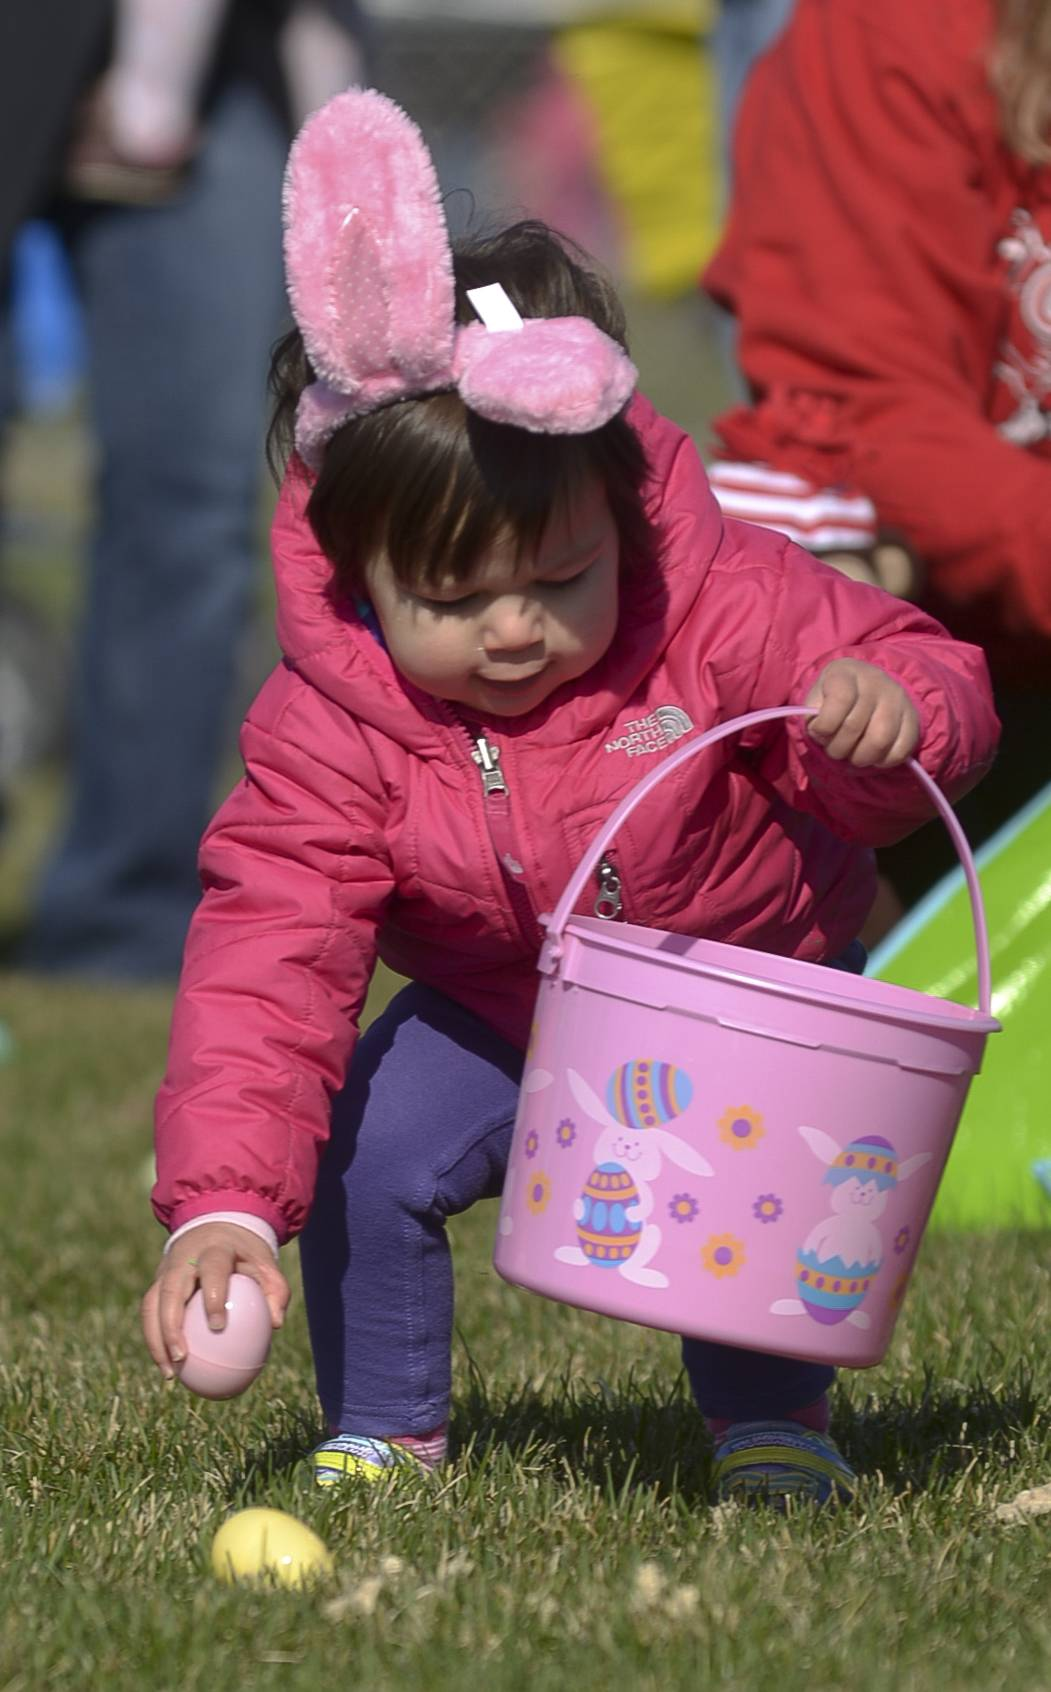 With bunny ears in place, two year old Alexis Berndl, of Bolingbrook, gathers up Easter Eggs at the 29th annual Jaycees Egg Hunt held at the Frontier Sports Complex in Naperville.